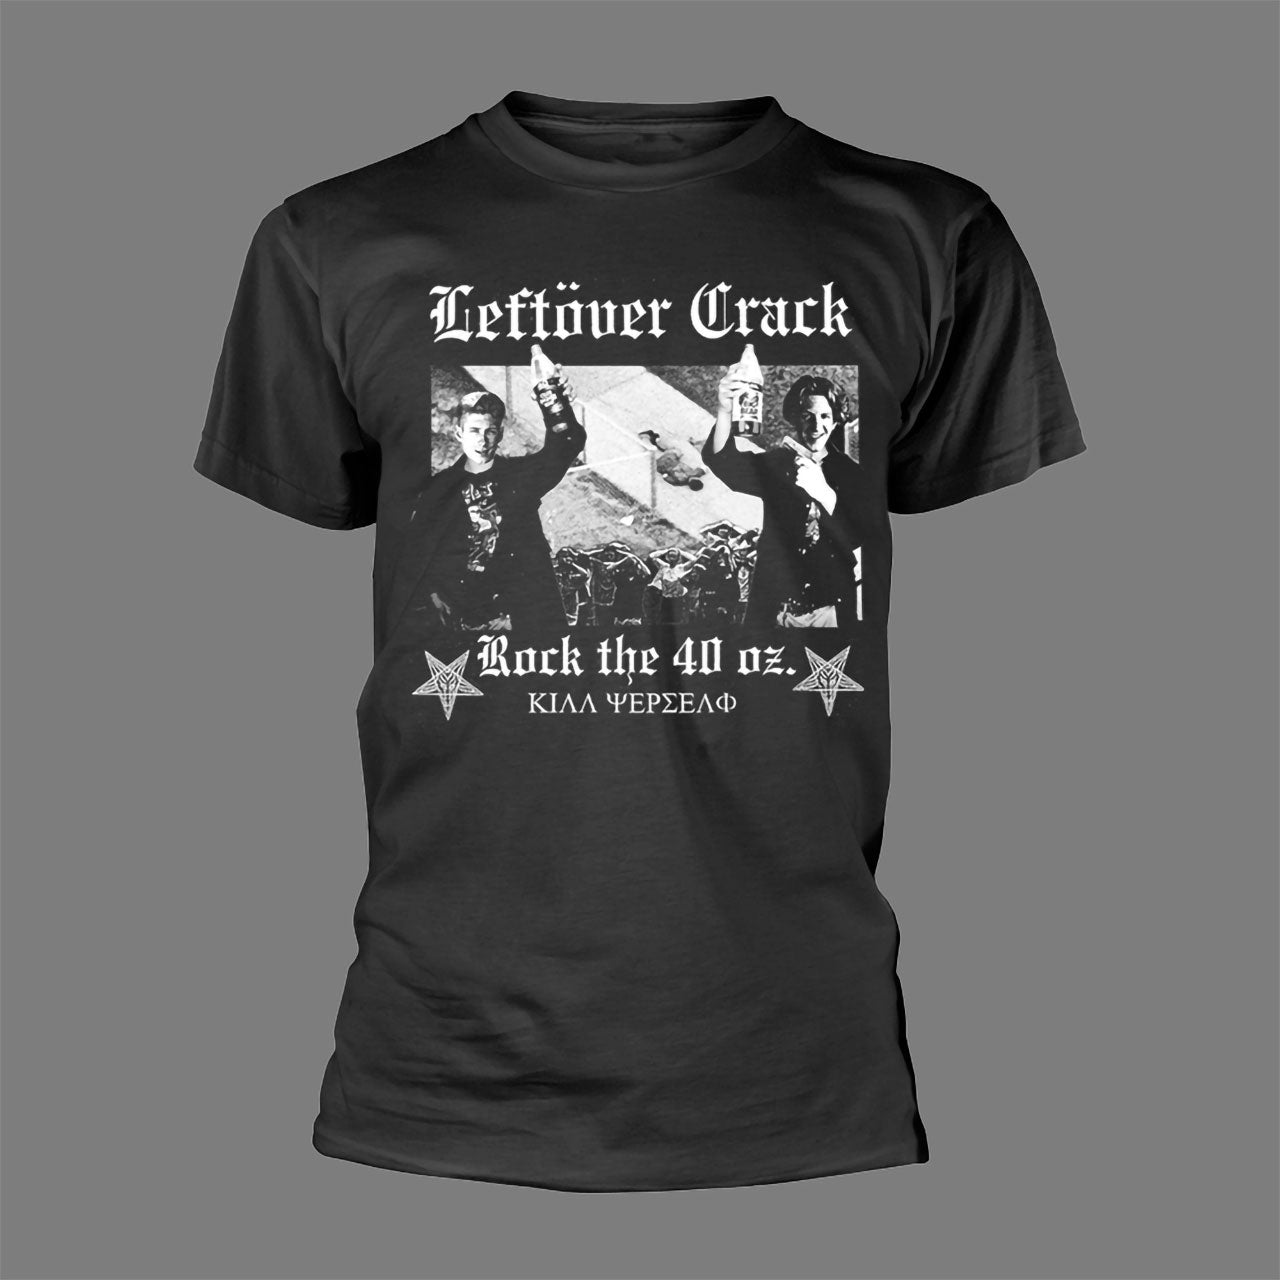 Leftover Crack - Rock the 40 oz (T-Shirt - Released: 26 February 2021)